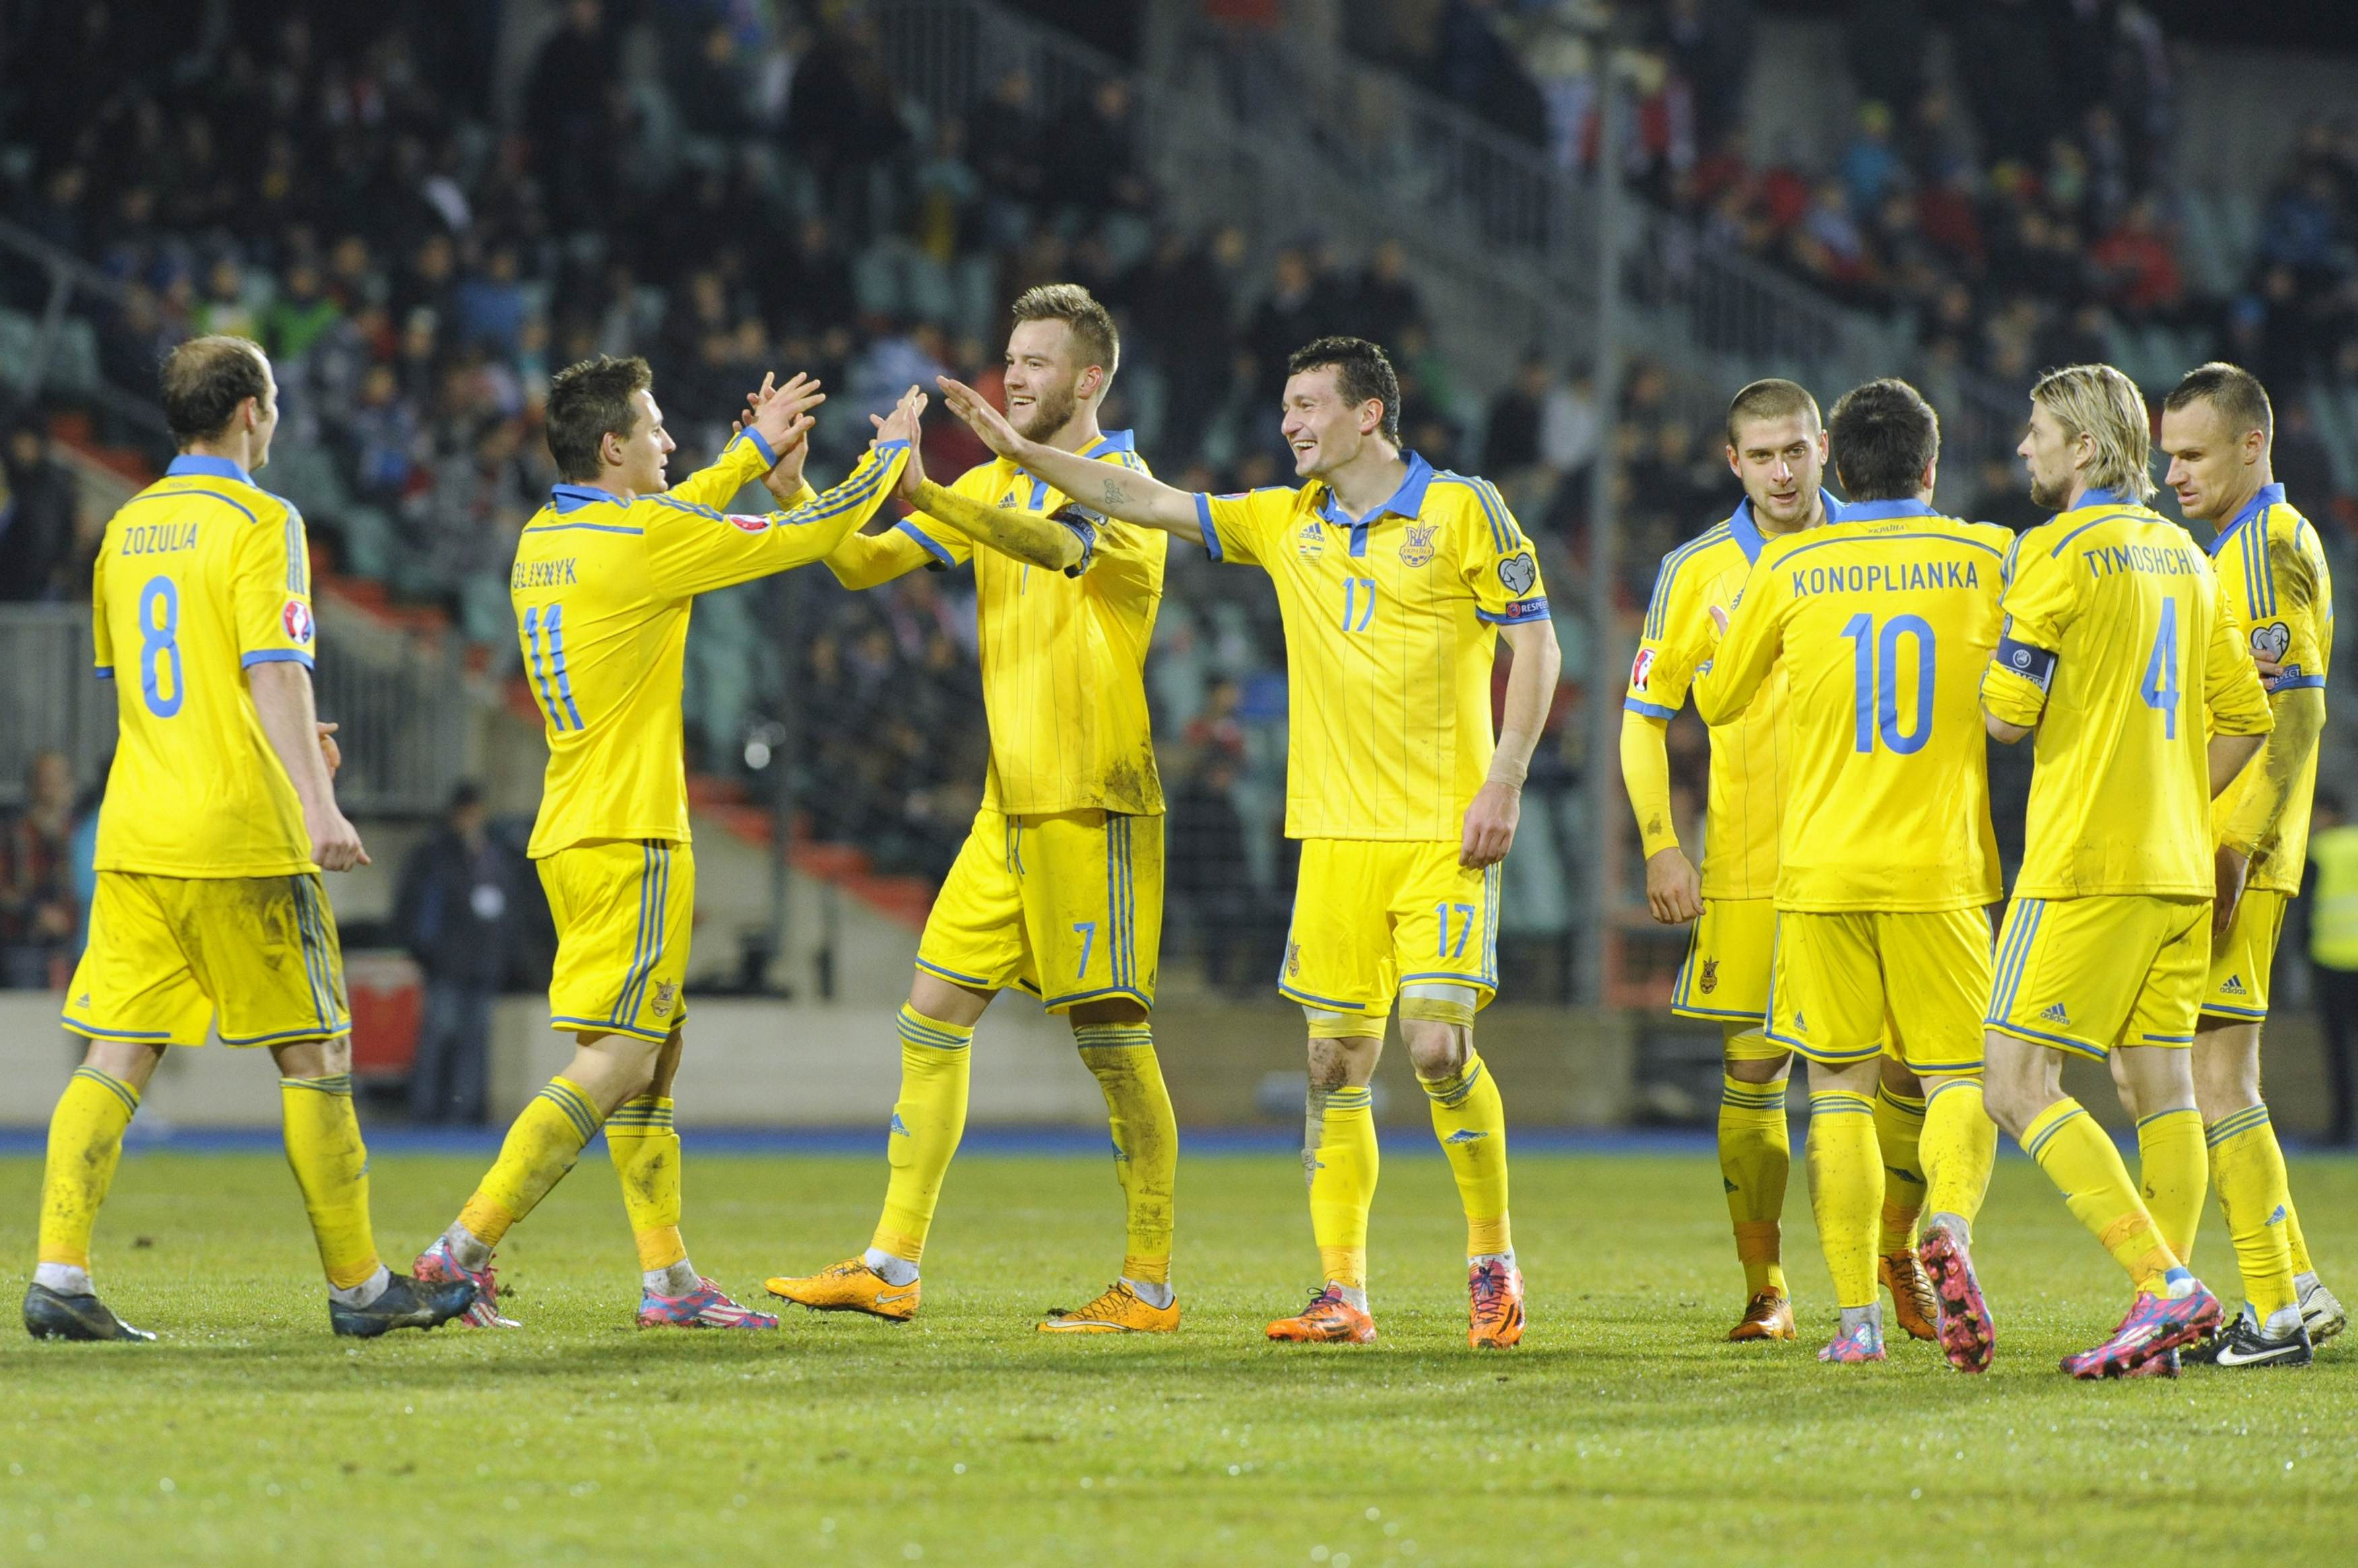 Ukraine's players celebrate a goal against Luxembourg during their Euro 2016 qualification soccer match at the Josy Barthel stadium in Luxembourg November 15, 2014.         REUTERS/Eric Vidal (LUXEMBOURG - Tags: SPORT SOCCER)